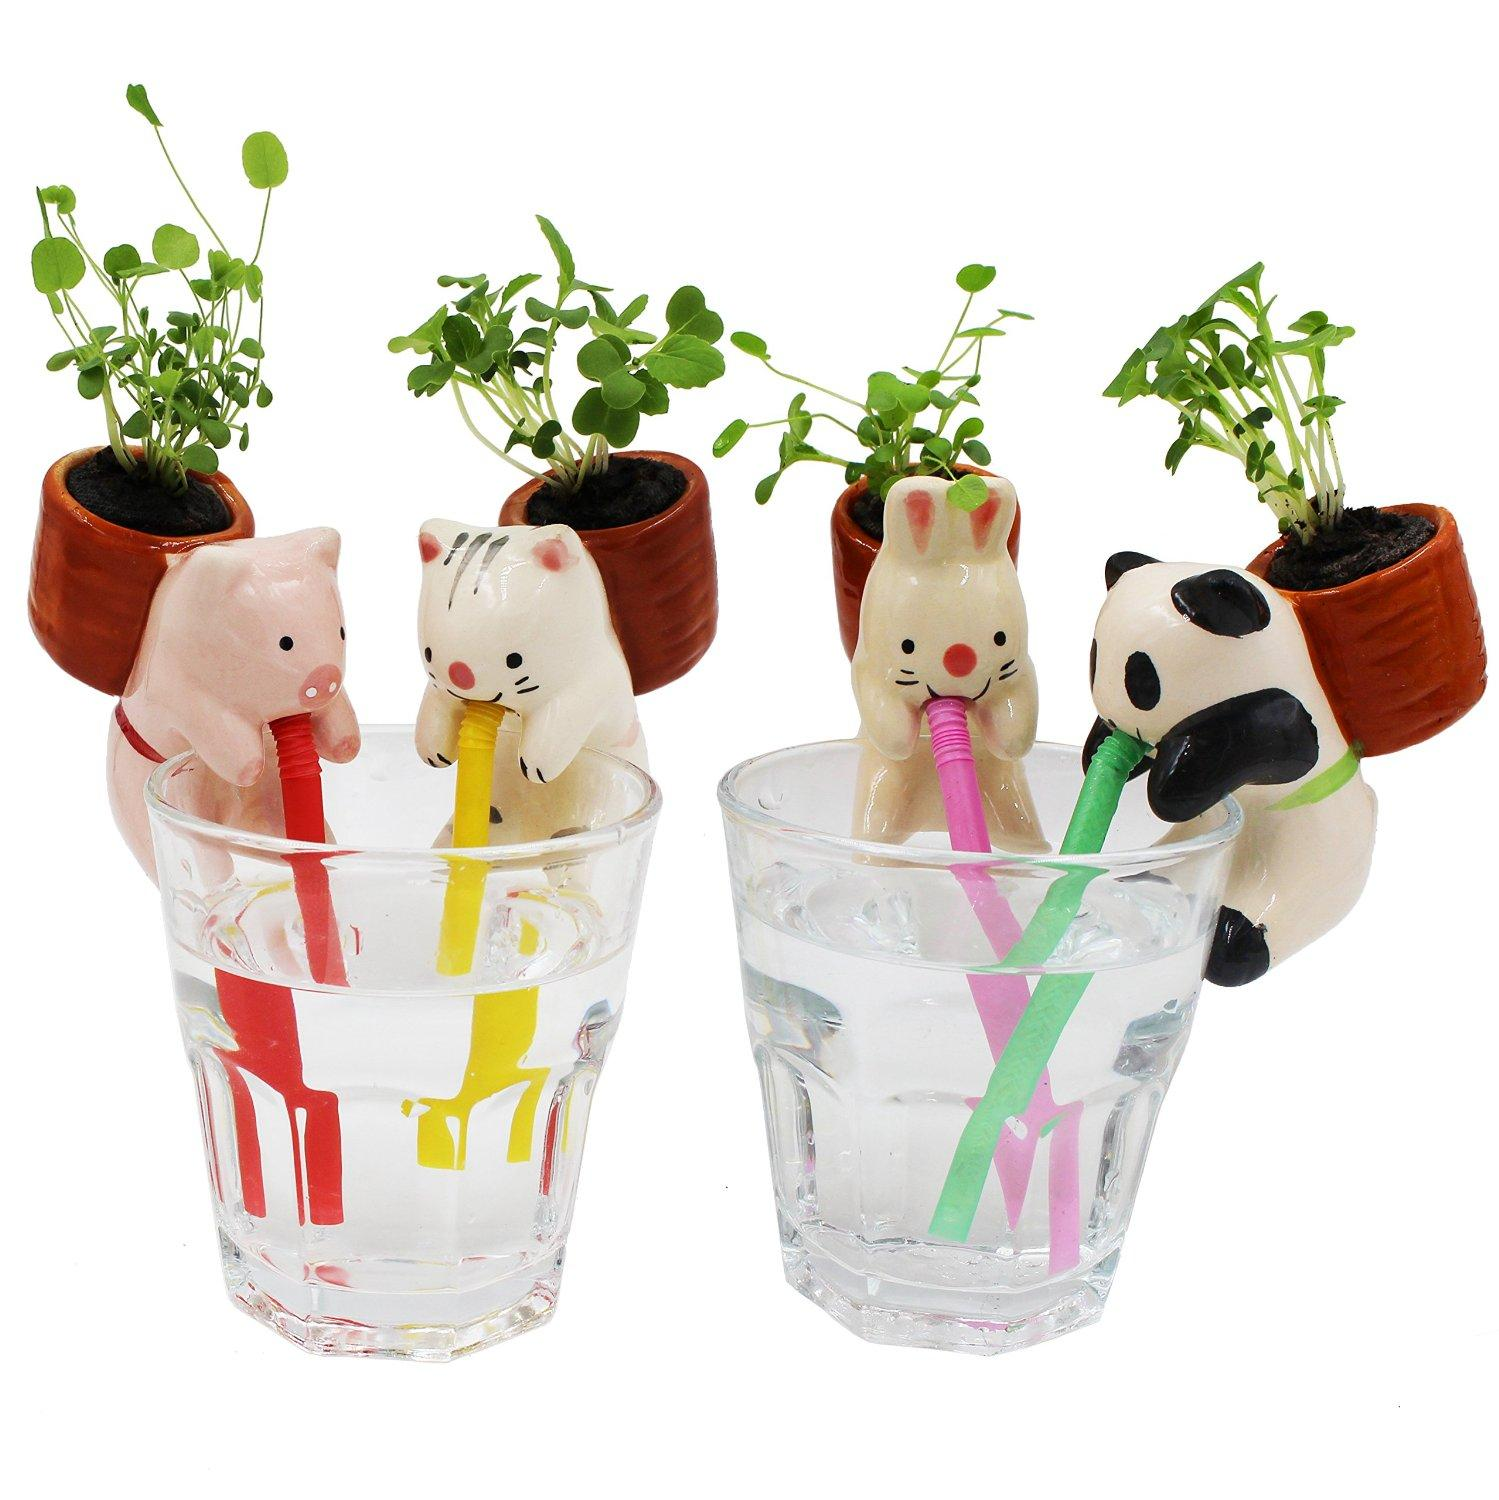 EMIDO Ceramic Mini Self Watering Plant Pot (4Pieces/Set)